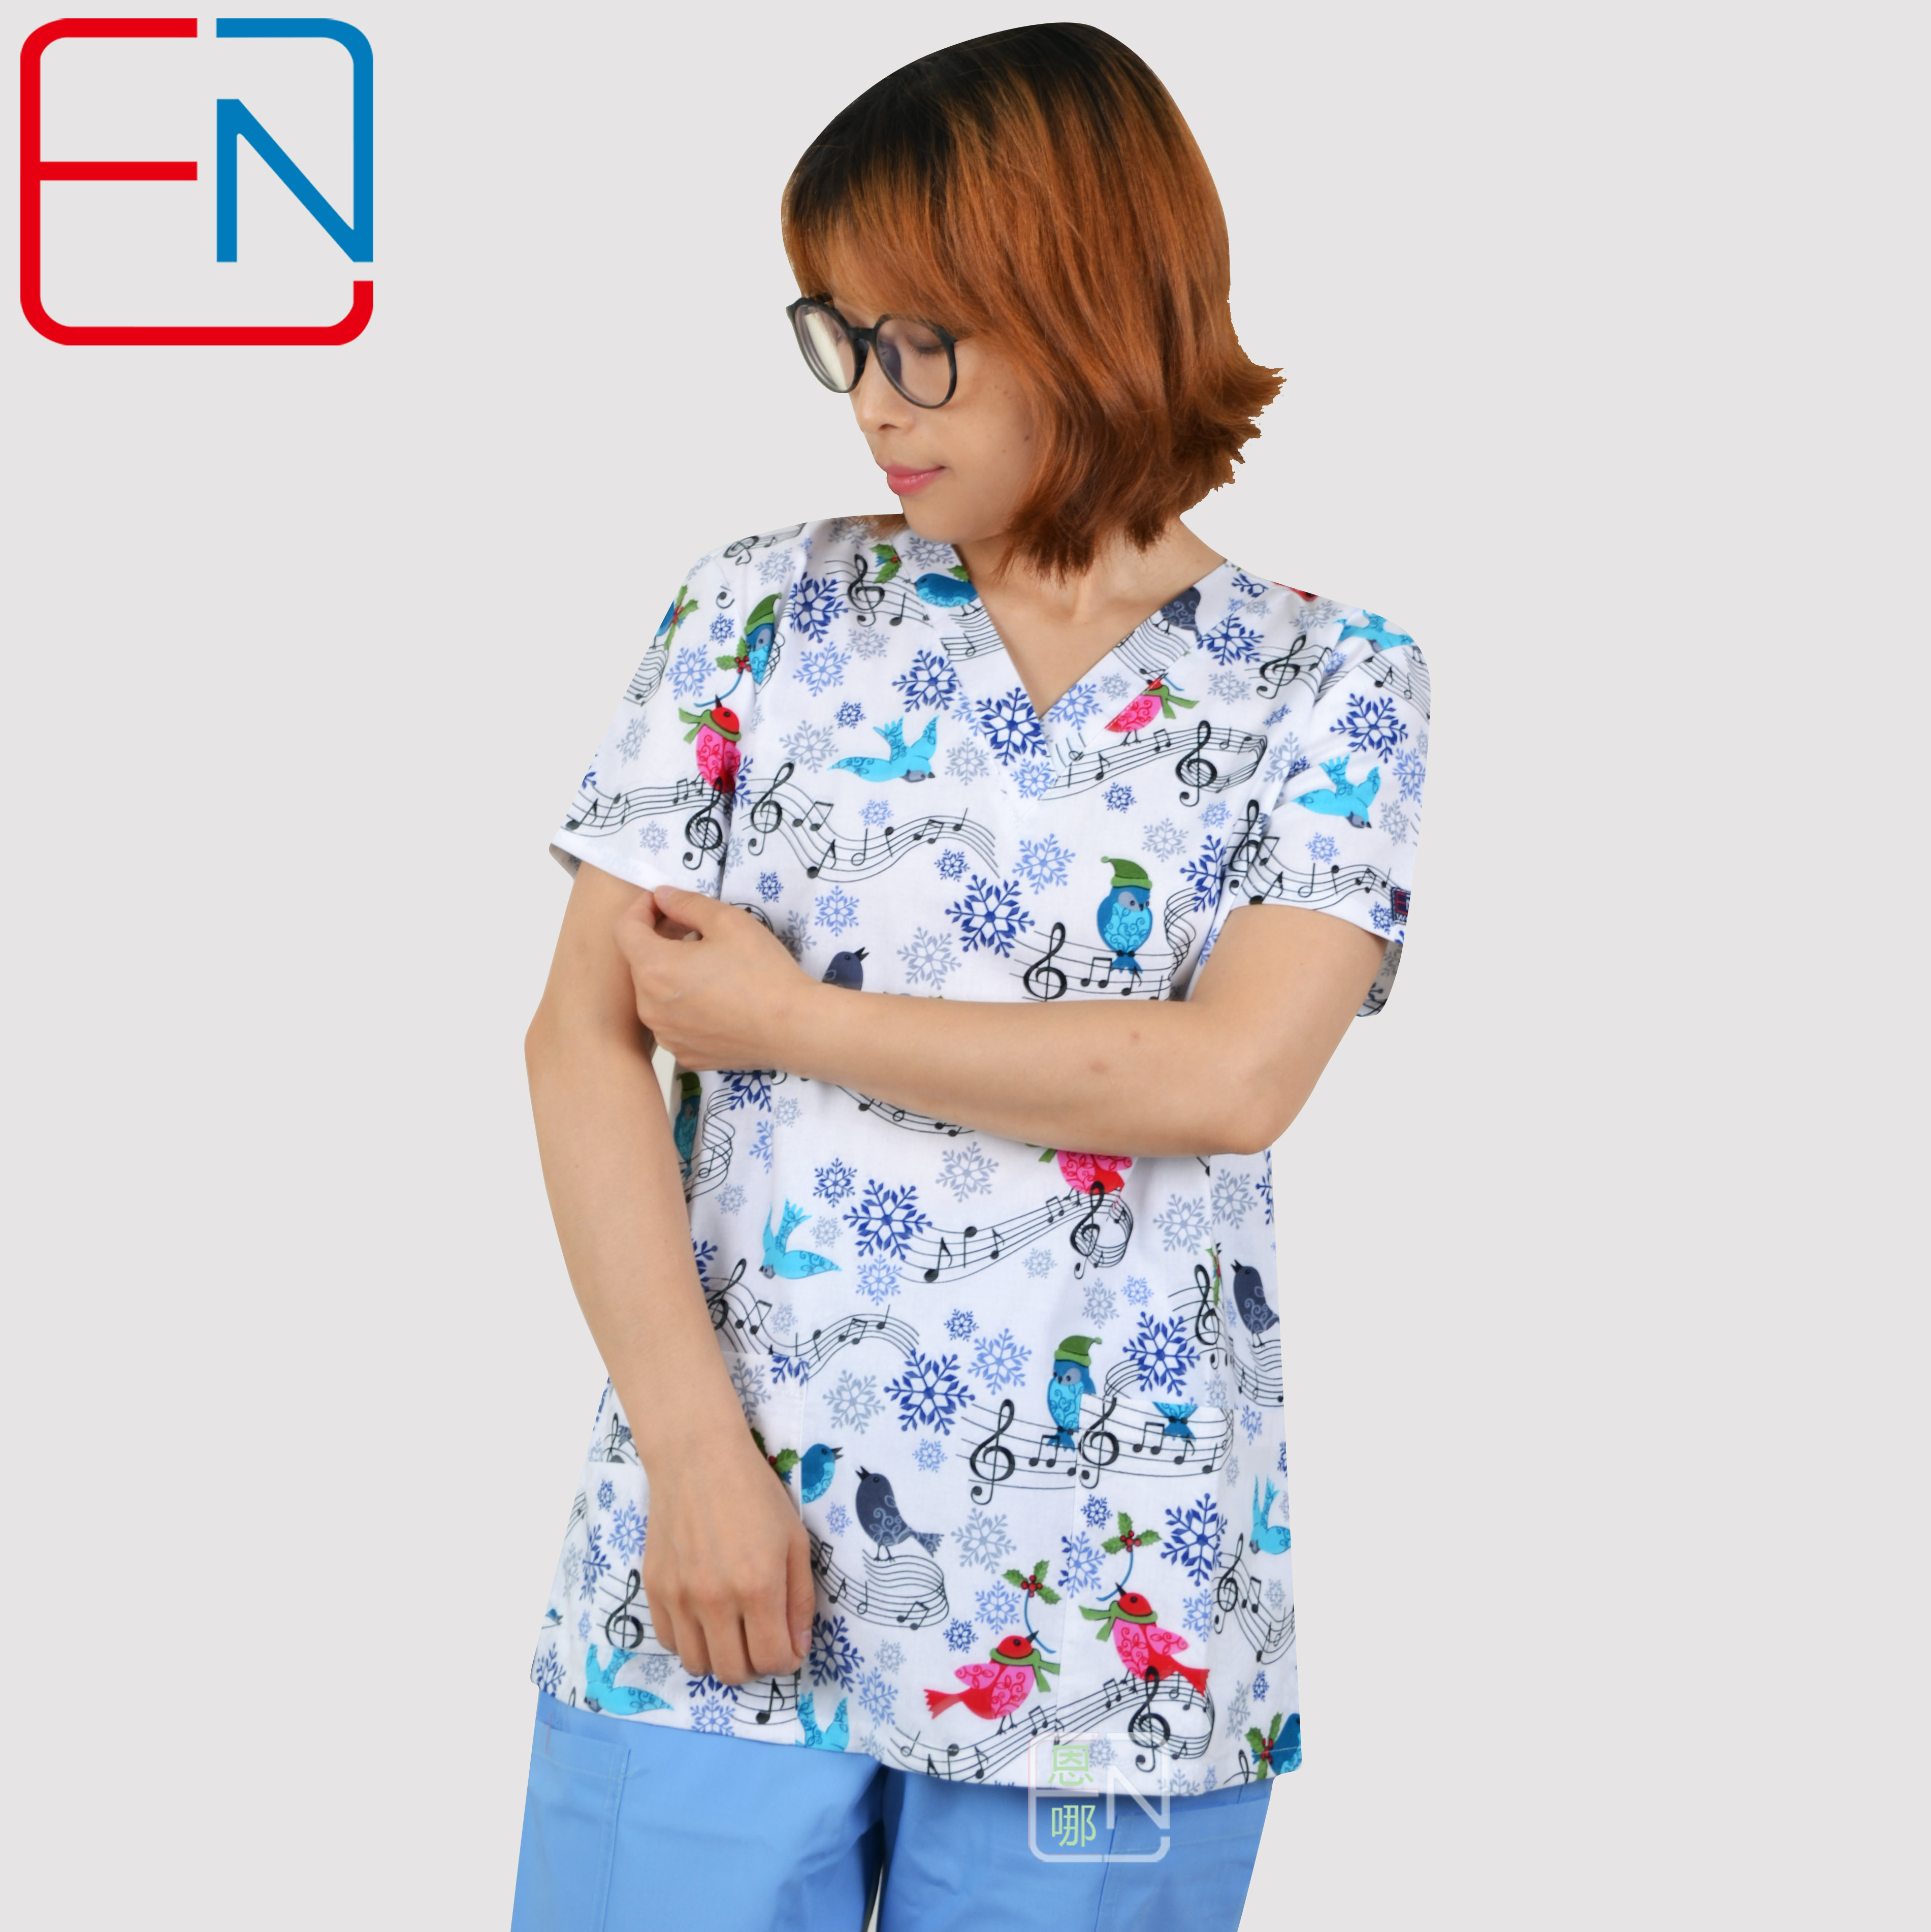 Hennar Women Medical Scrub Tops V-Neck White Print Notes 100% Cotton Surgical Scrubs Top Hospital Clinical Medical Uniforms